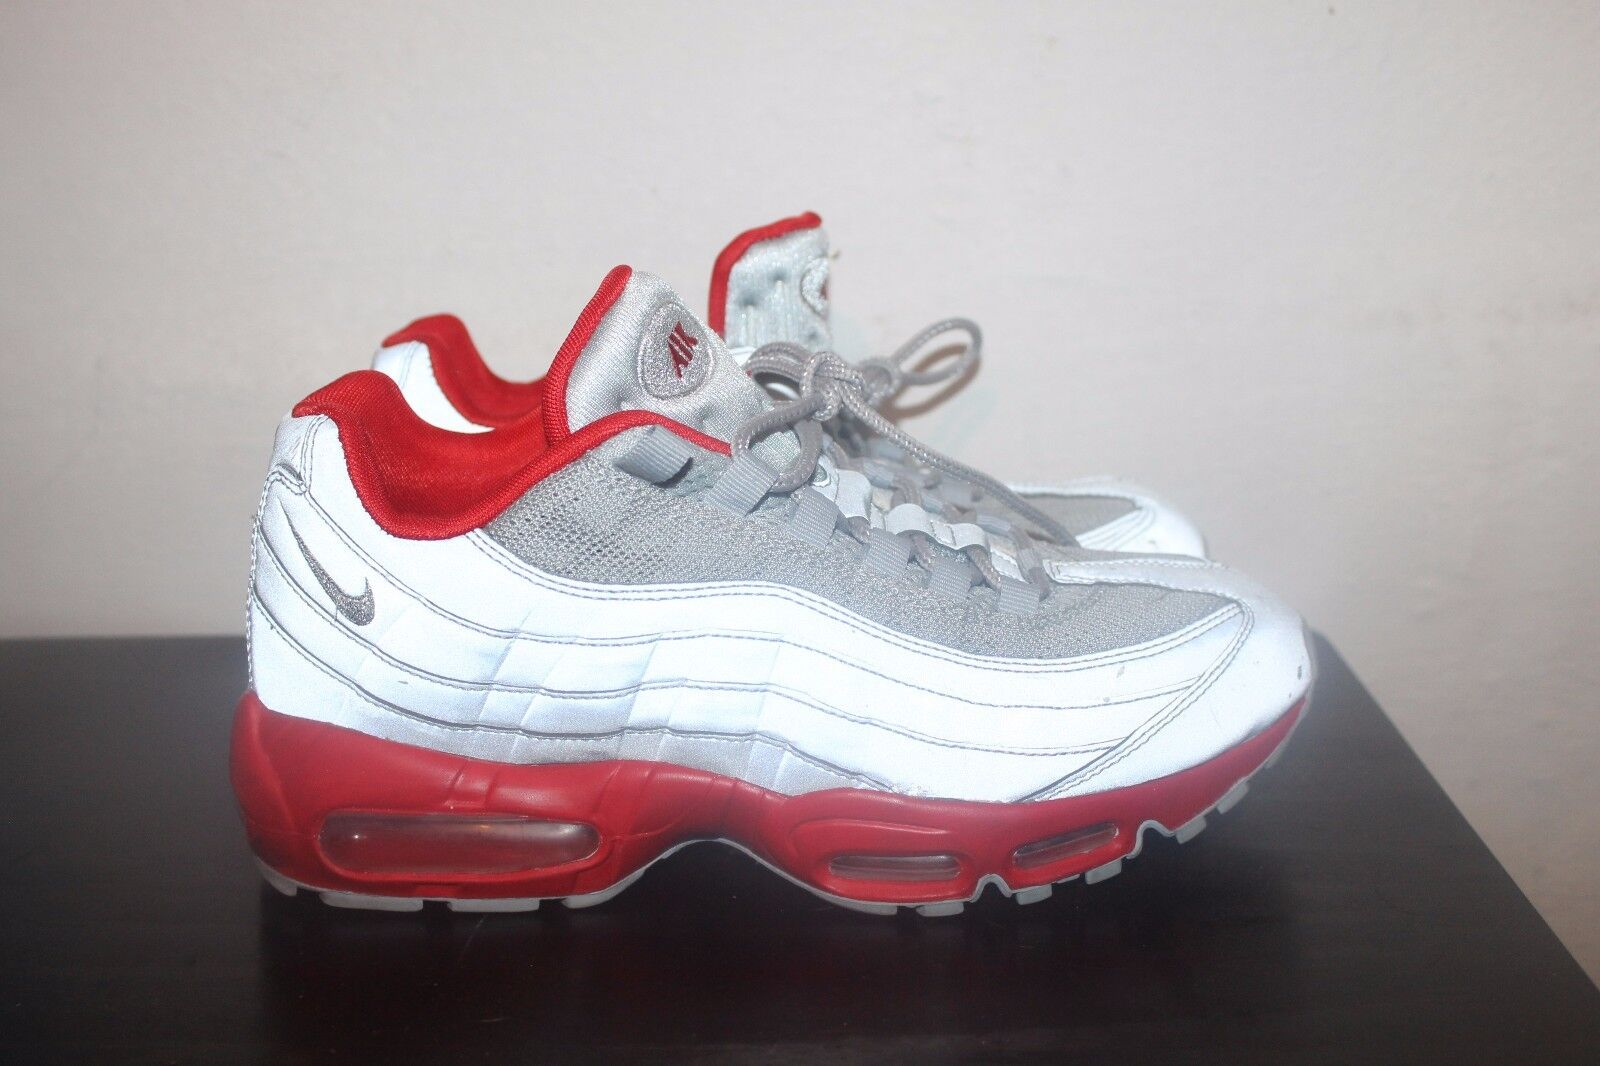 Nike Silver Air Max '95 Attack Pack